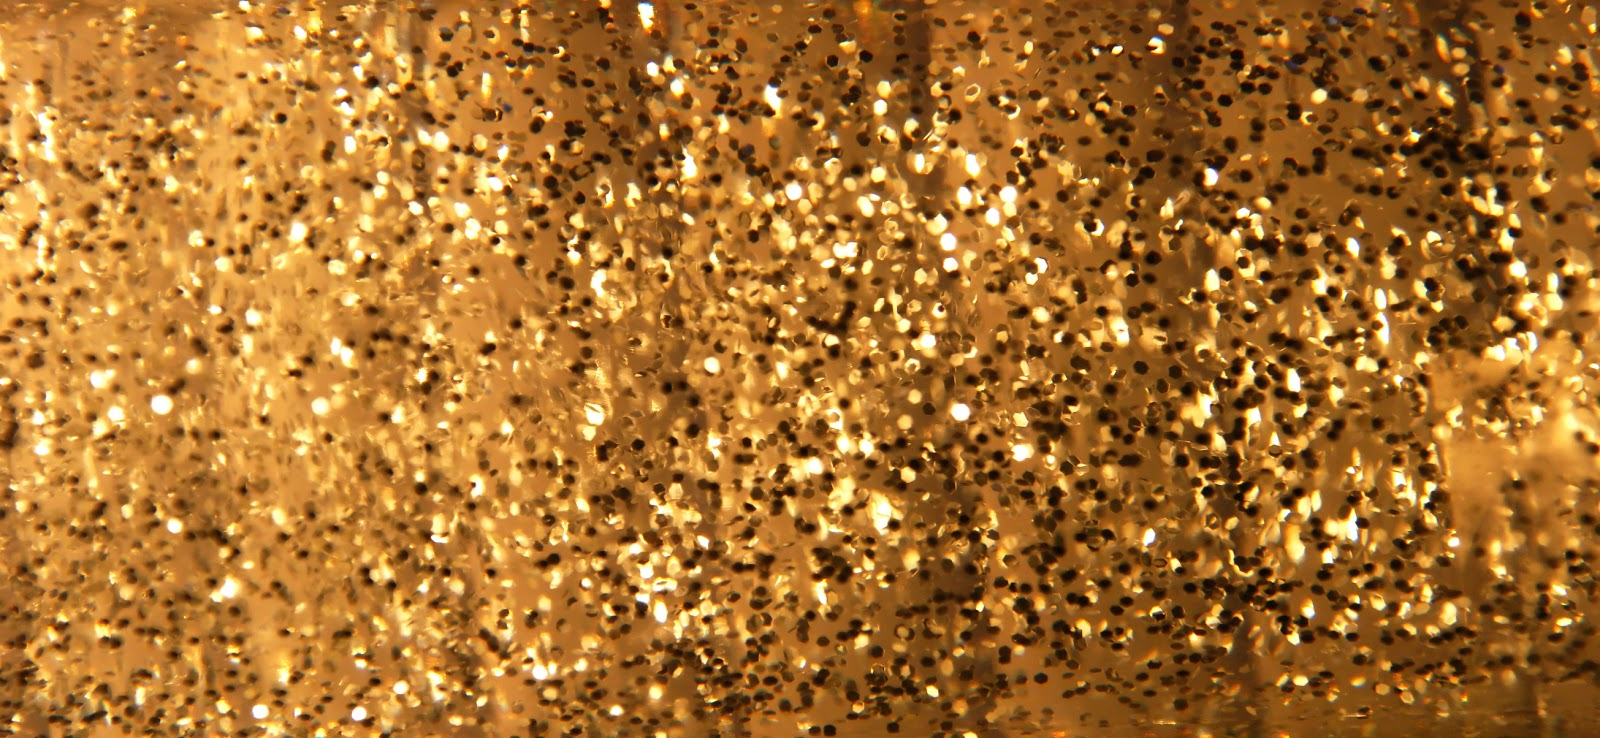 Rose gold glitter wallpaper wallpapersafari - Gold desktop background ...